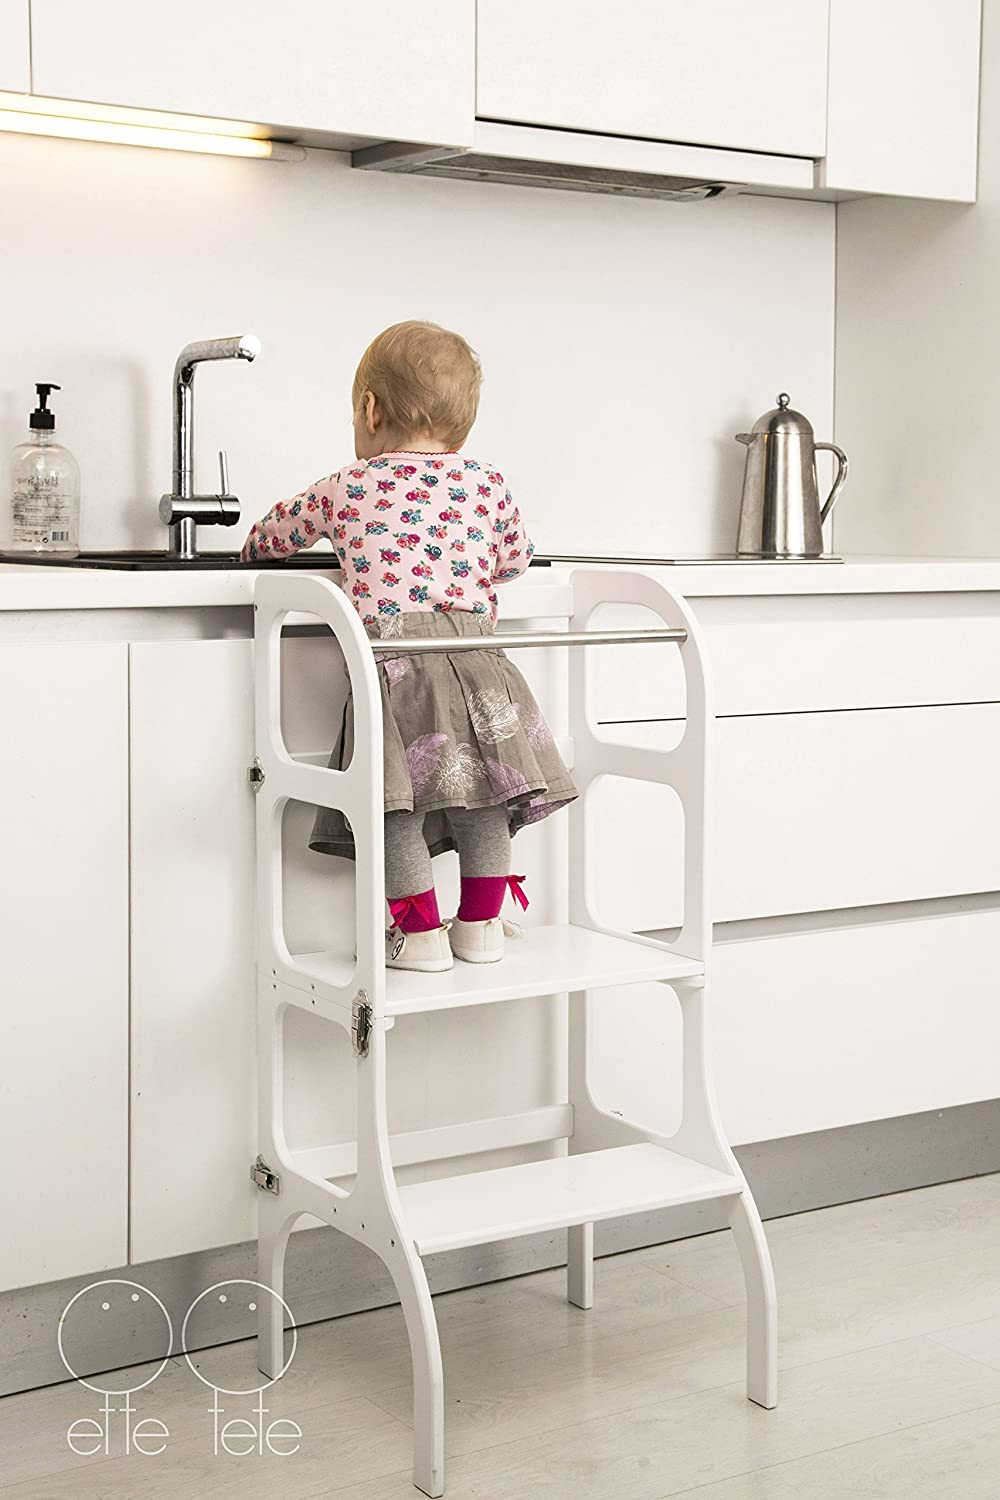 Convertible Helper tower Montessori learning stool kitchen step stool table//chair StepnSit all-in-one WHITE color//antique BRASS clasps